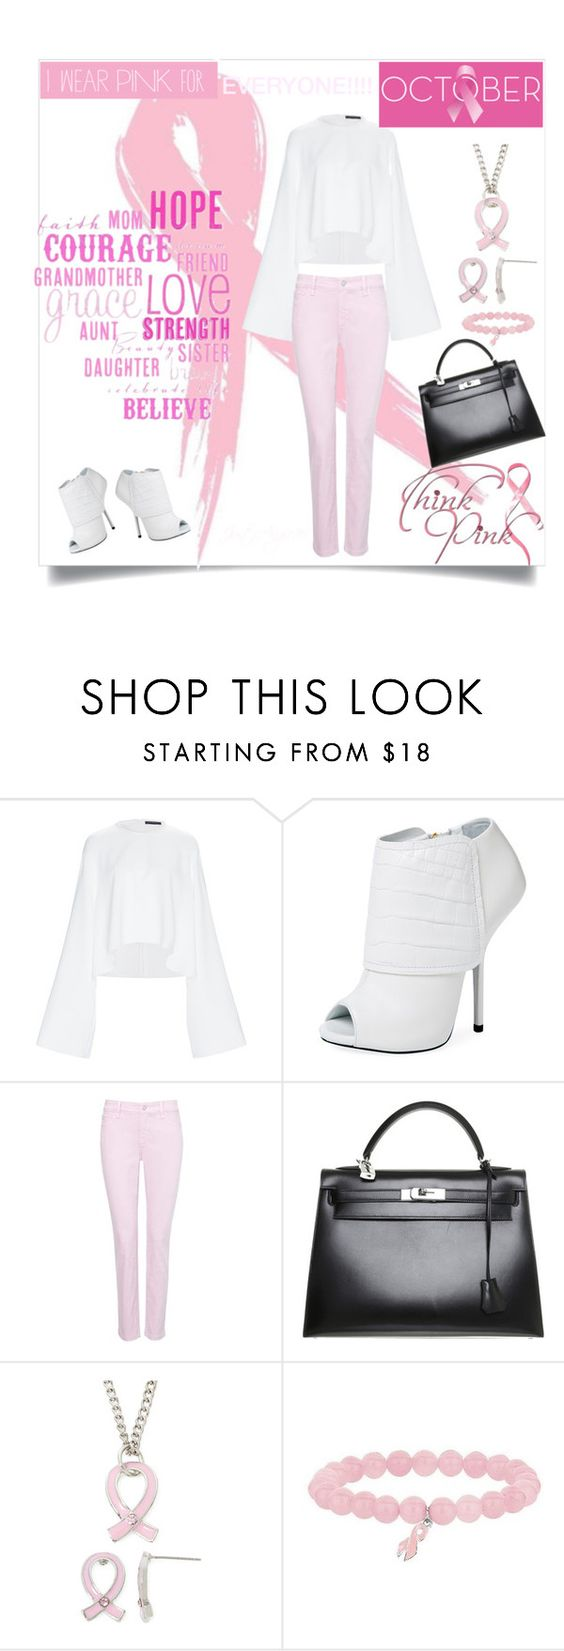 """""""Breast Cancer Awareness"""" by justangie76 ❤ liked on Polyvore featuring E L L E R Y, Giuseppe Zanotti, NYDJ, Hermès, Religion Clothing and Bling Jewelry"""